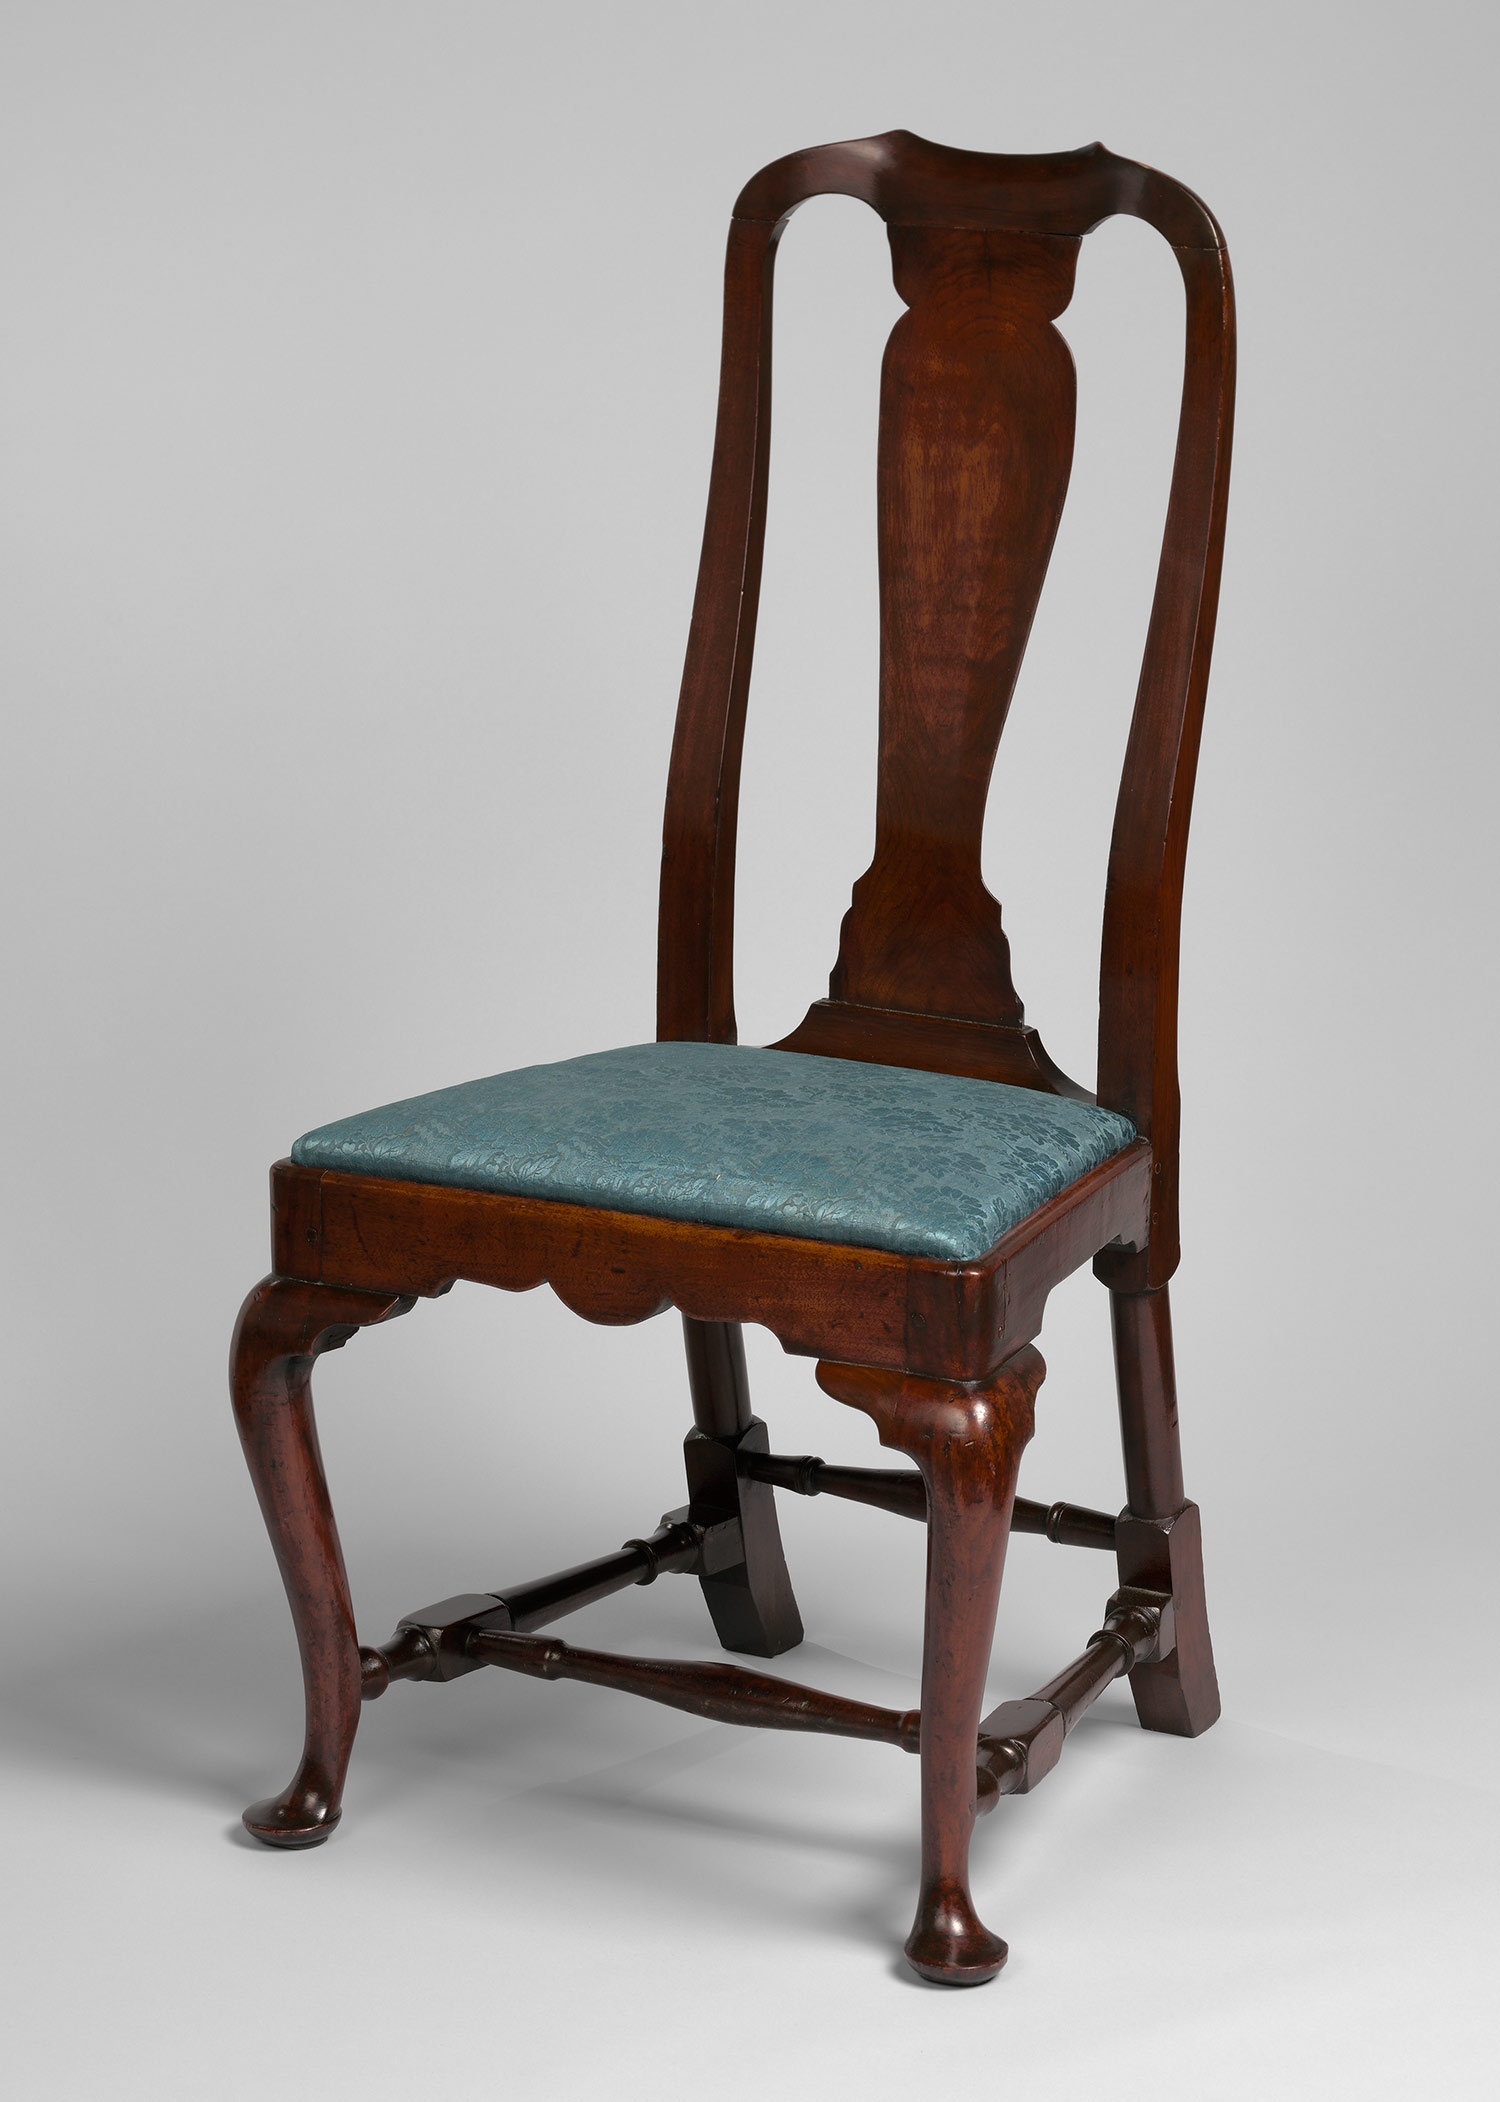 Queen Anne Chair History About the Timel...